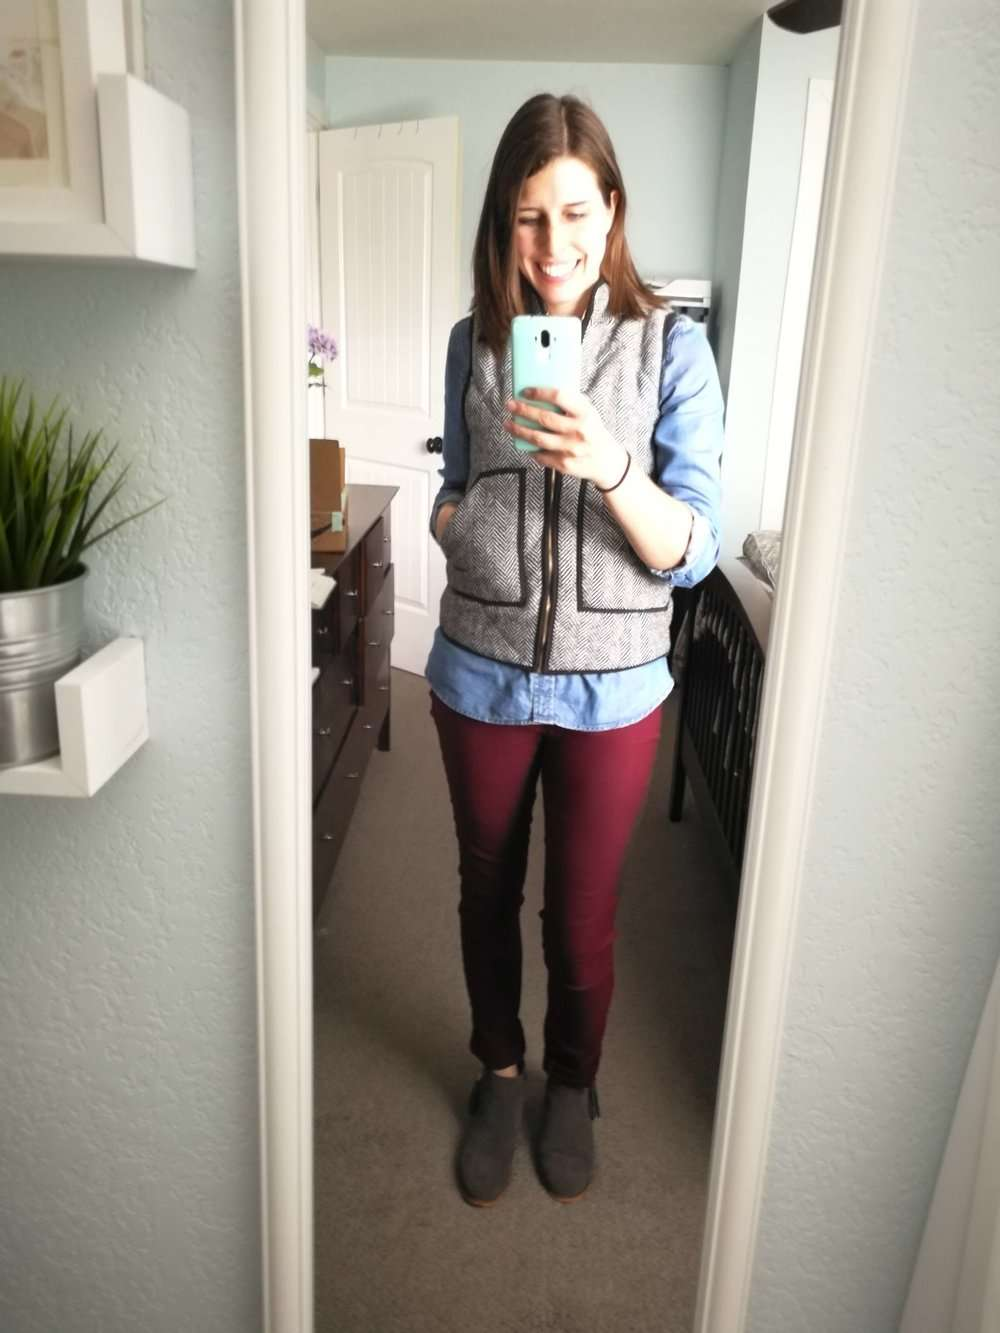 Chambray Top + Herringbone Quilted Vest + Burgundy Pants (cuffed) + Ankle Boots